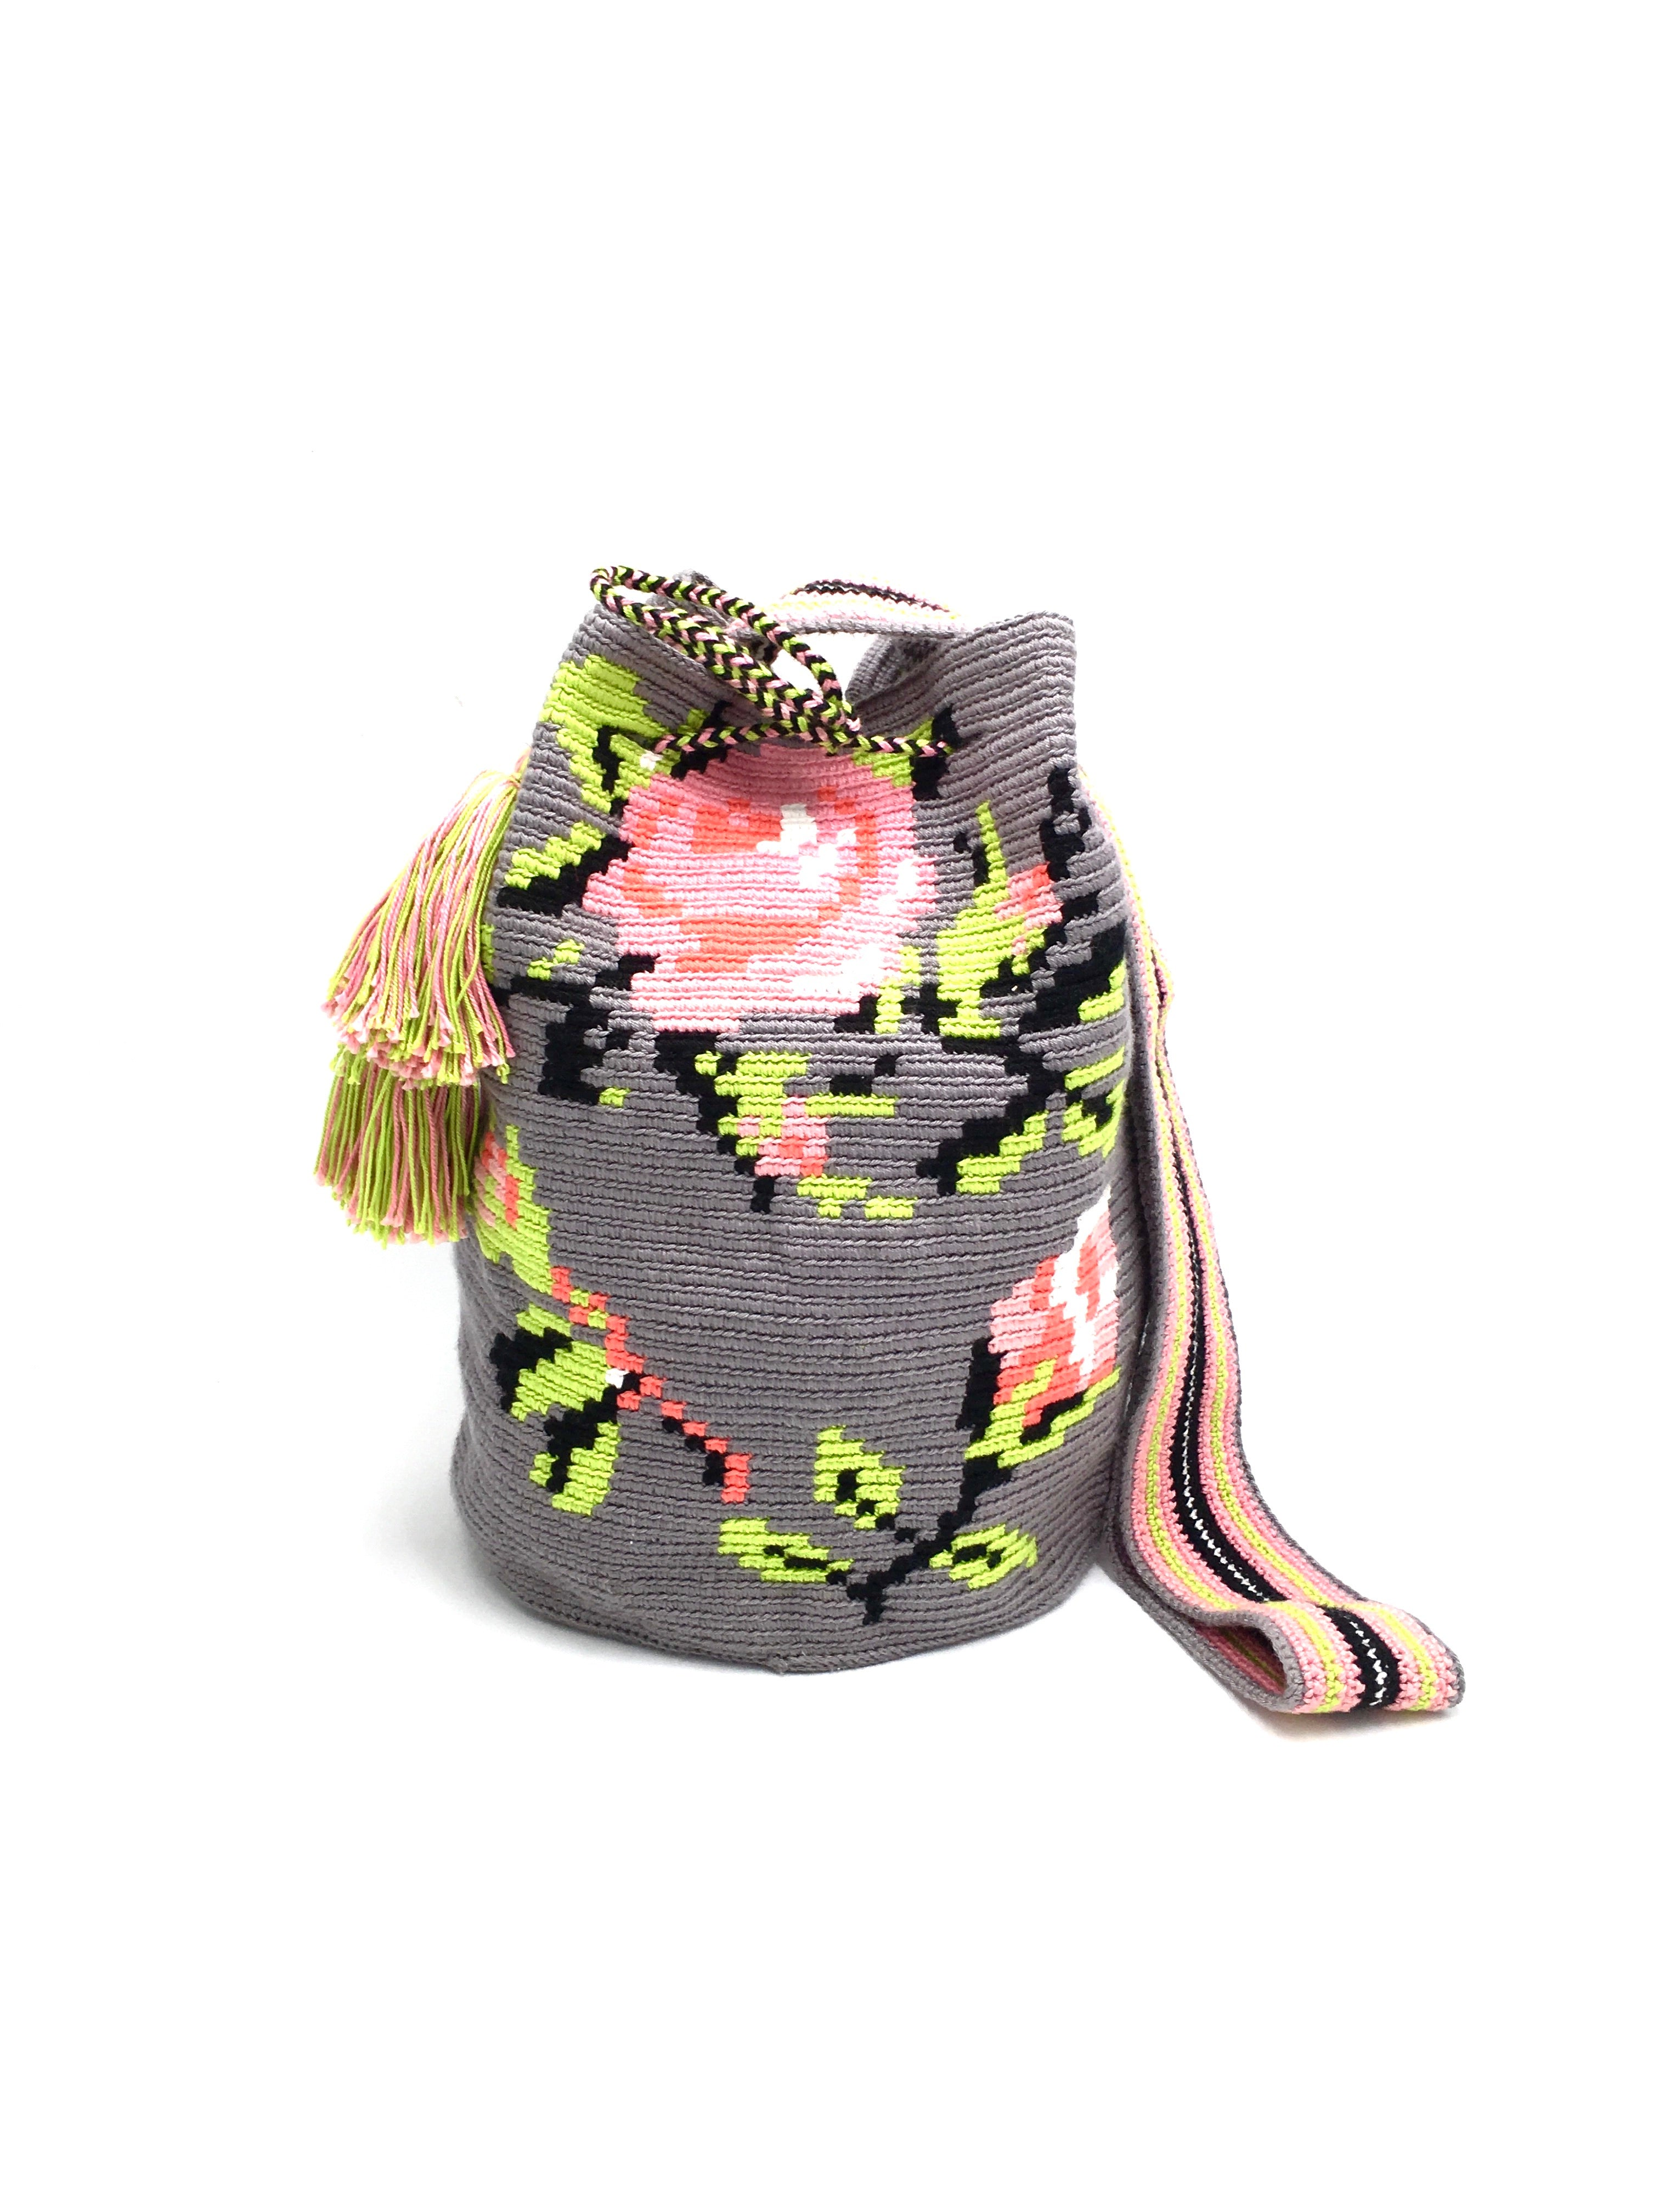 Roses bag, grey body, with rose pink flowers.